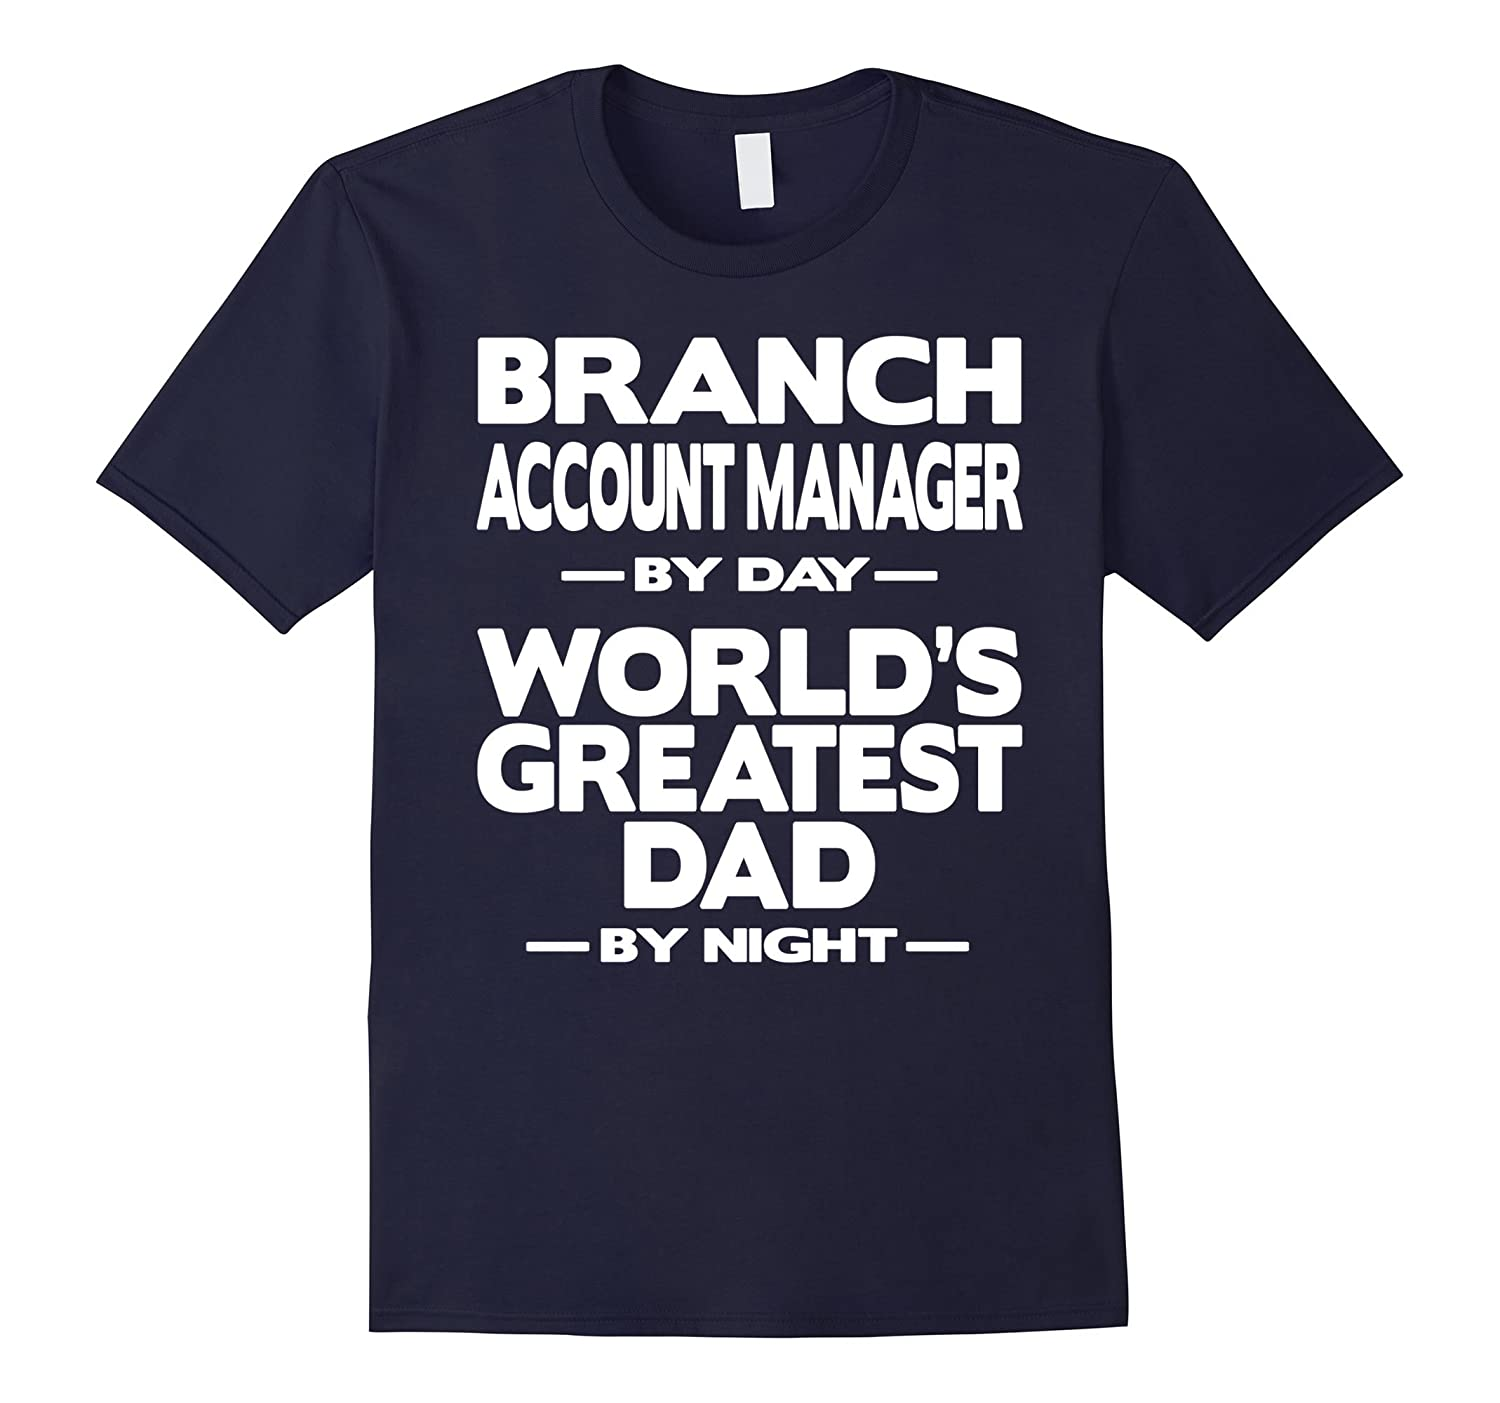 Branch Account Manager Worlds Greatest Dad T-Shirt-TD